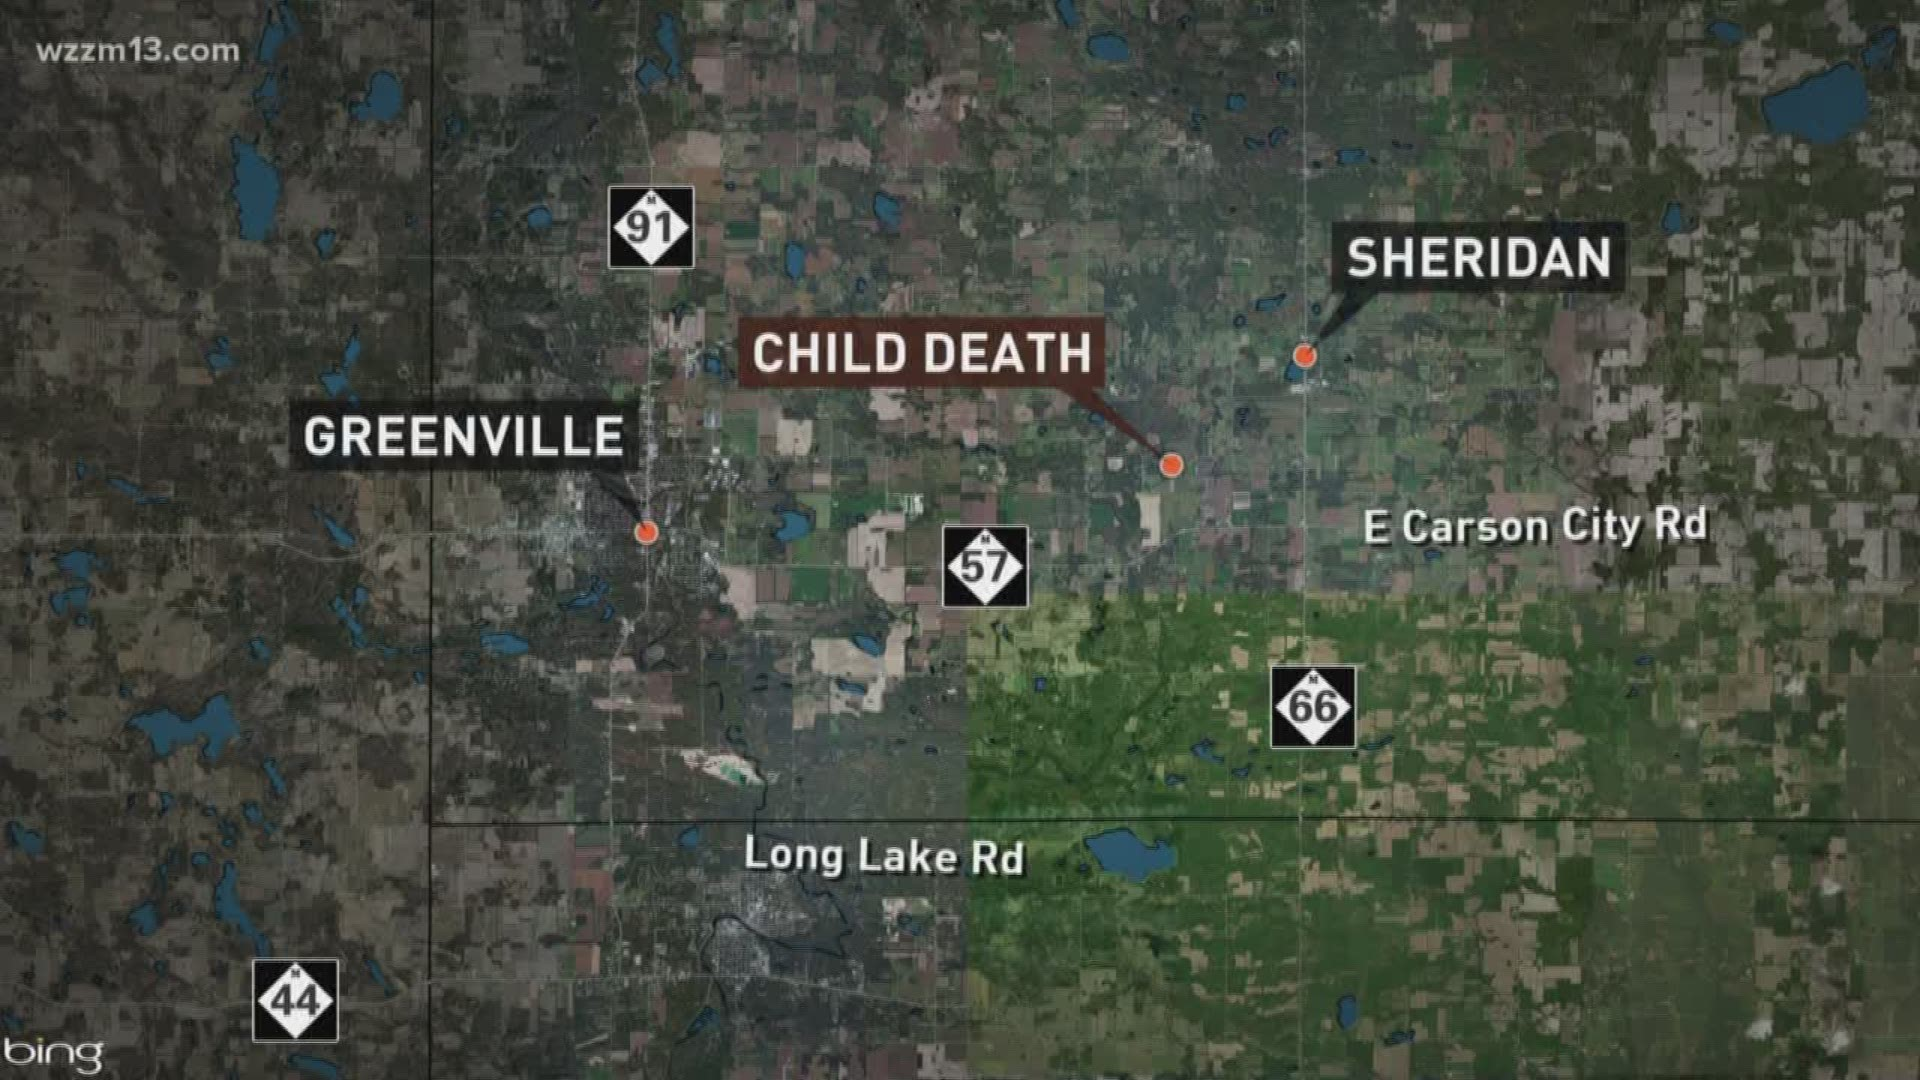 1 Year Old Girl Drowns In Standing Water In Her Backyard Wzzm13 Com